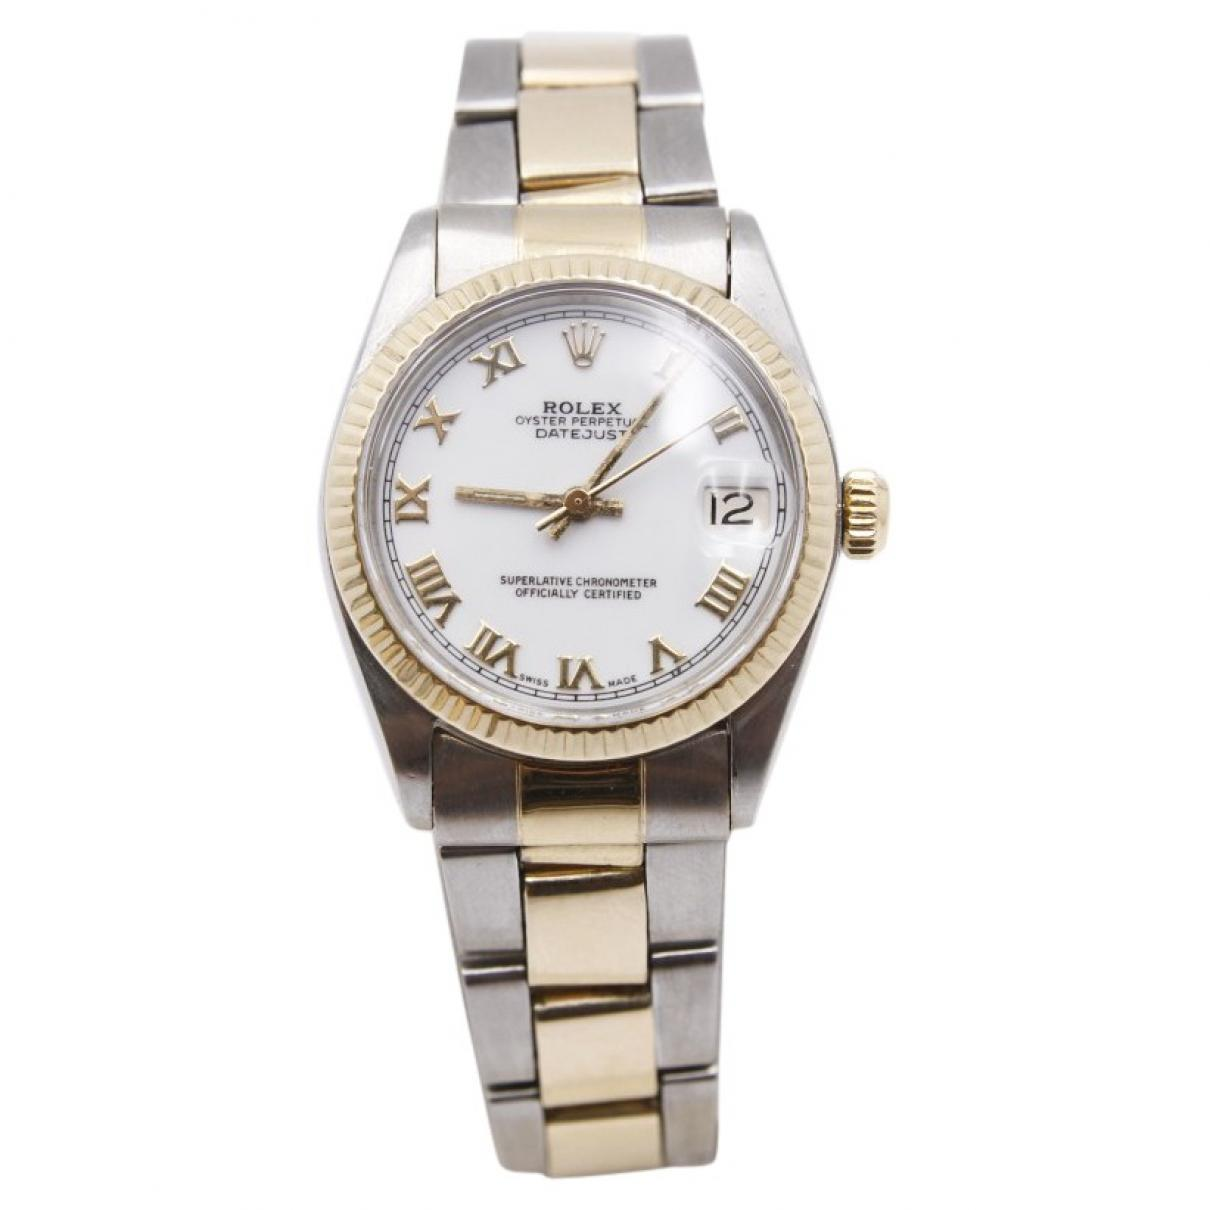 02700a86981 Lyst - Rolex Datejust 31mm Watch in Metallic